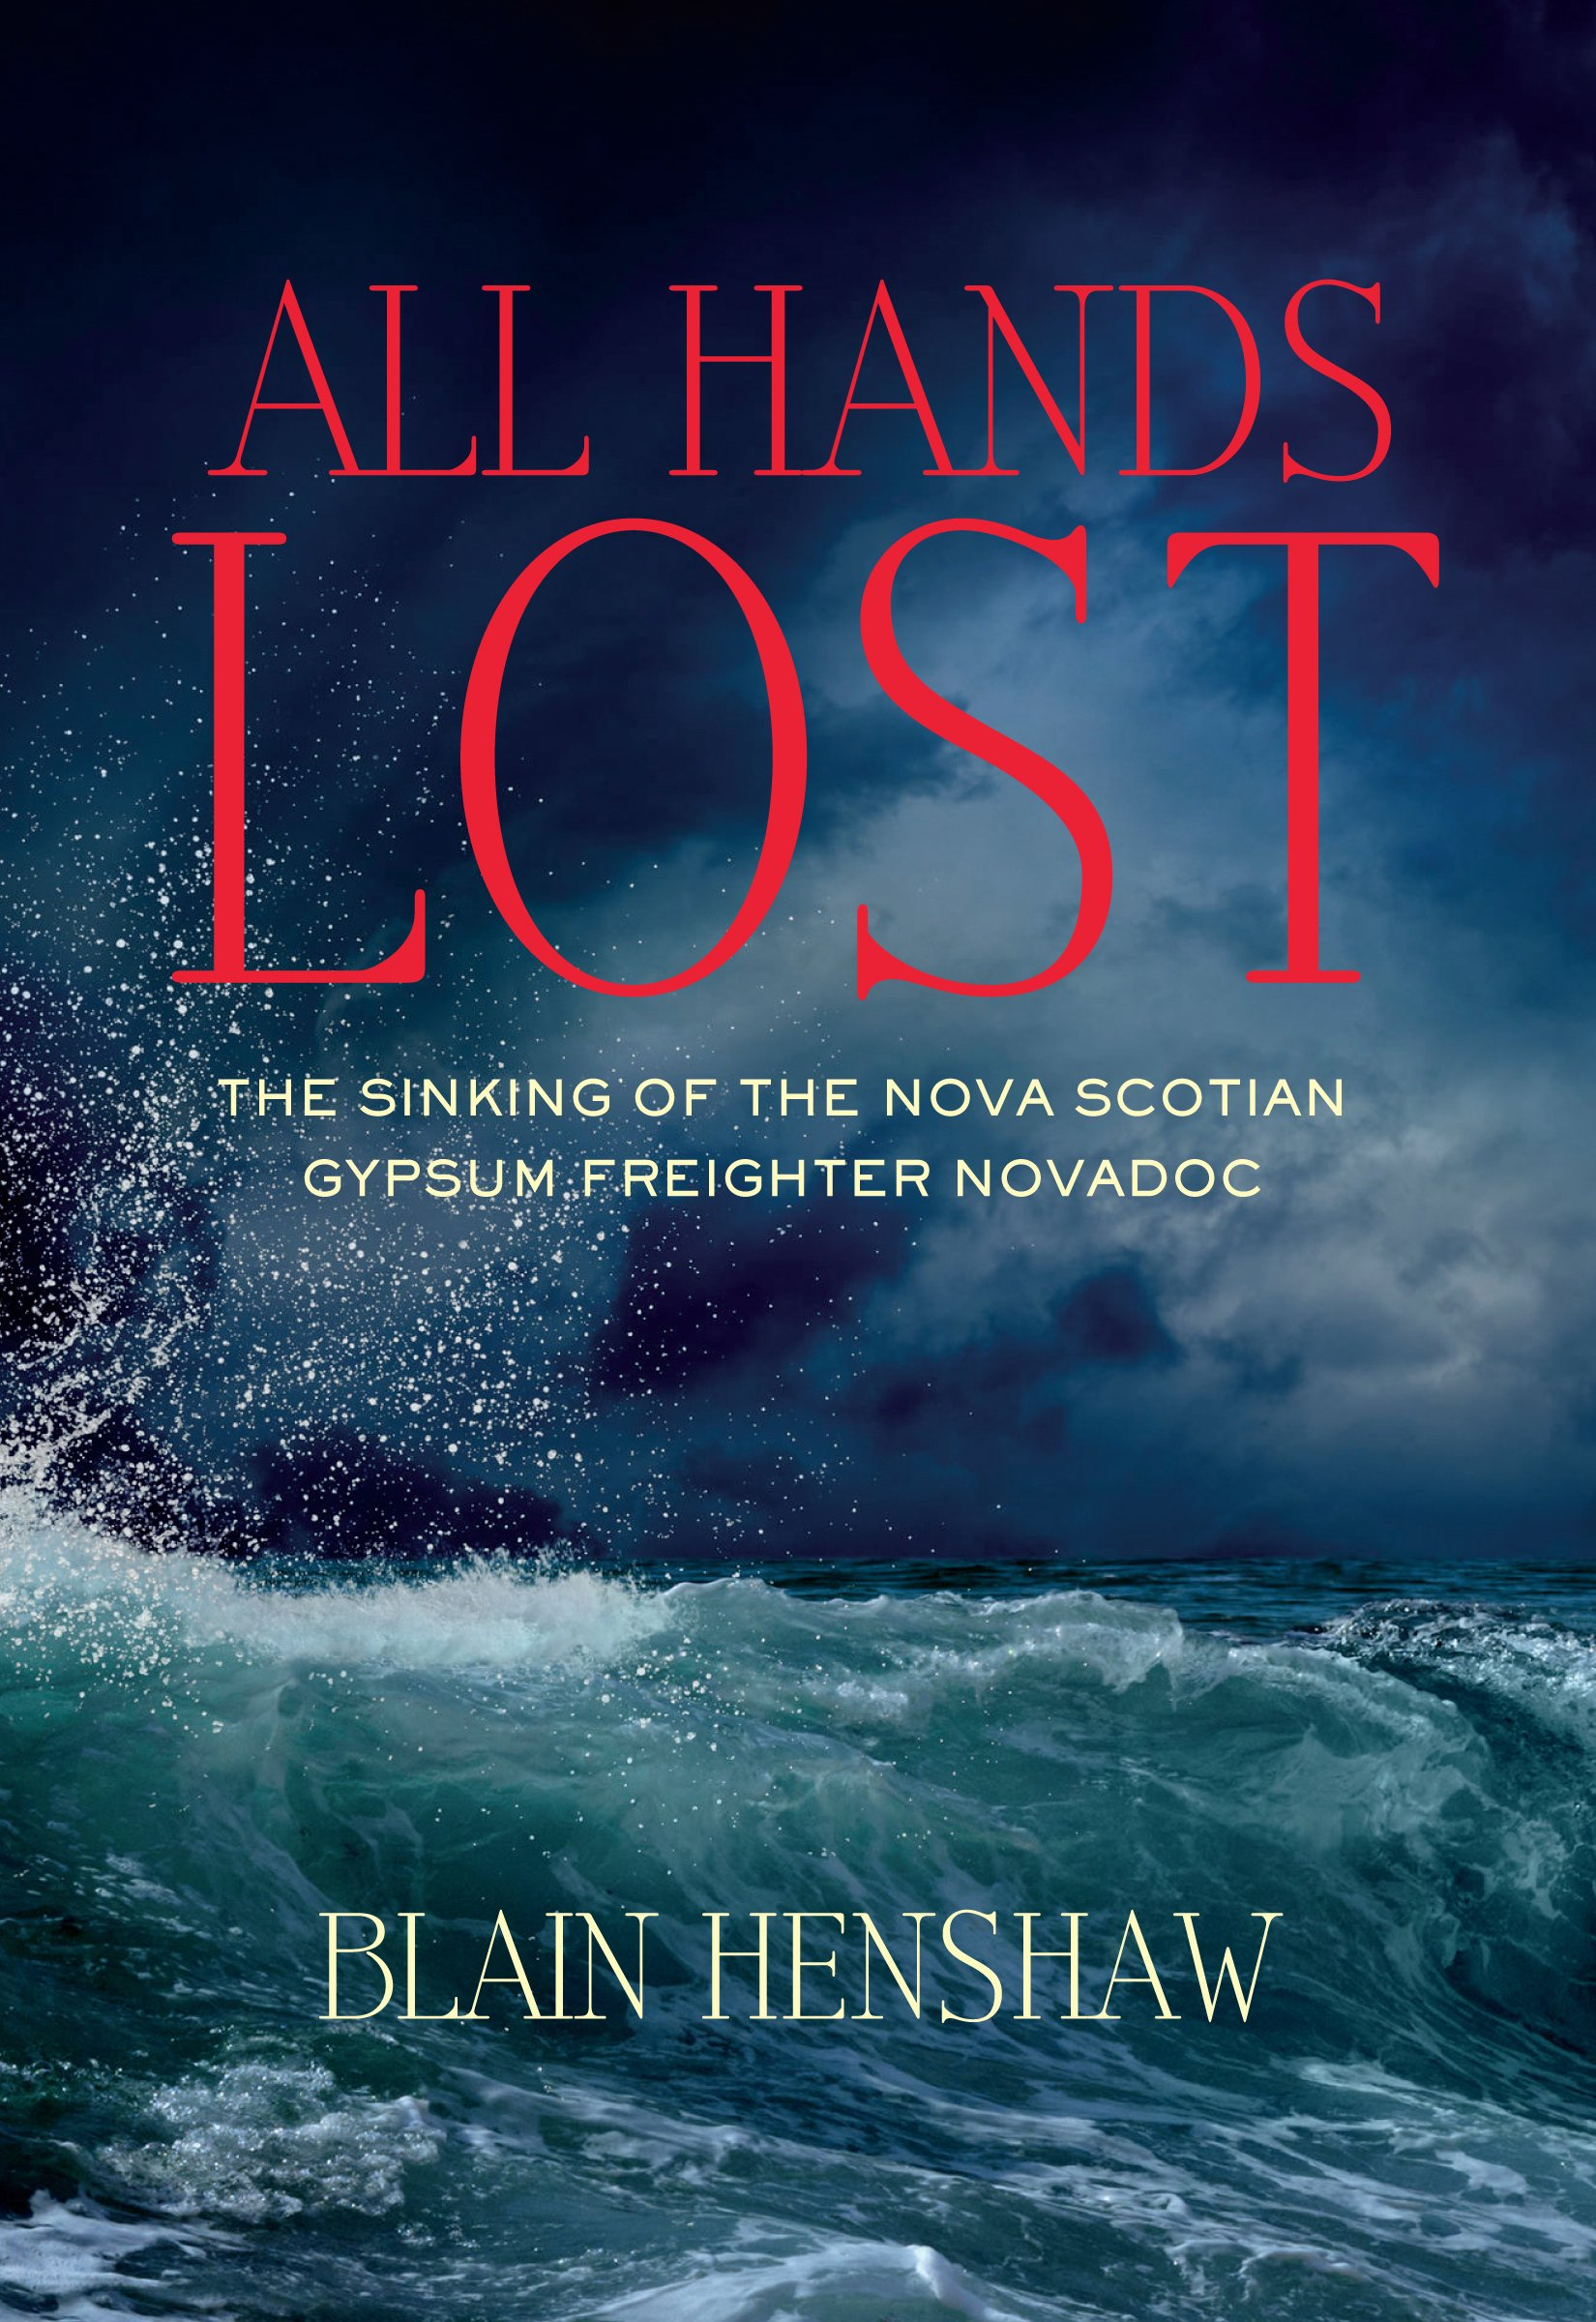 All hands lost sinking of the nova scotia gypsum freighter all hands lost sinking of the nova scotia gypsum freighter novadoc blain henshaw 9781897426784 books amazon aiddatafo Gallery